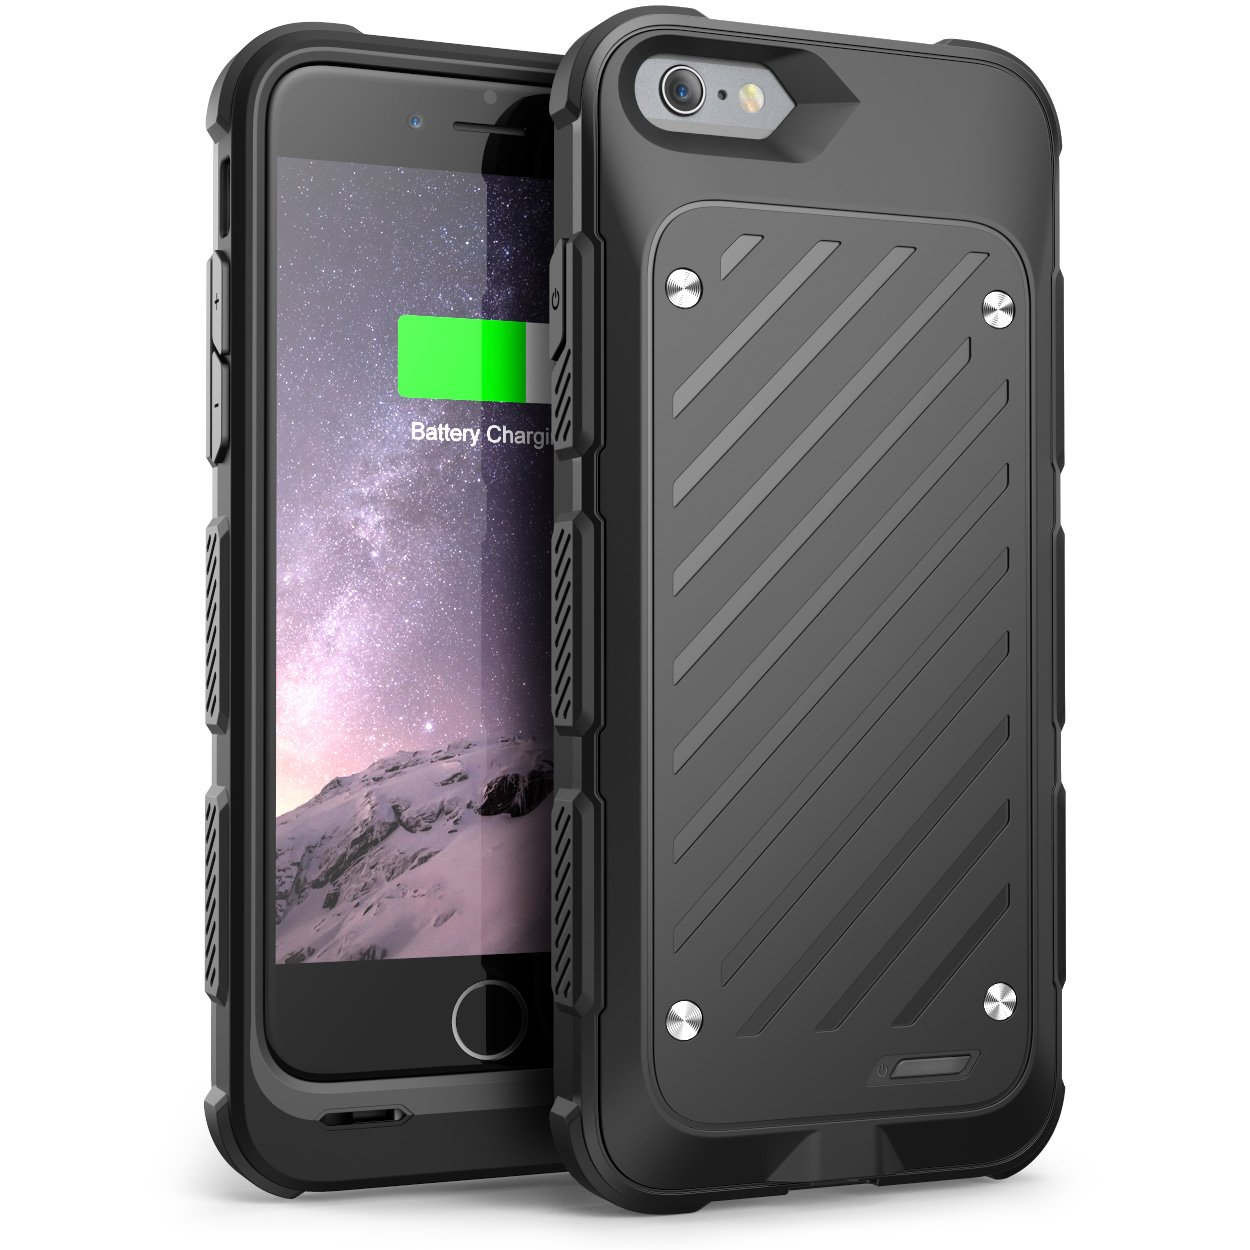 iPhone Battery SUPCASE Certified Holster Image 2